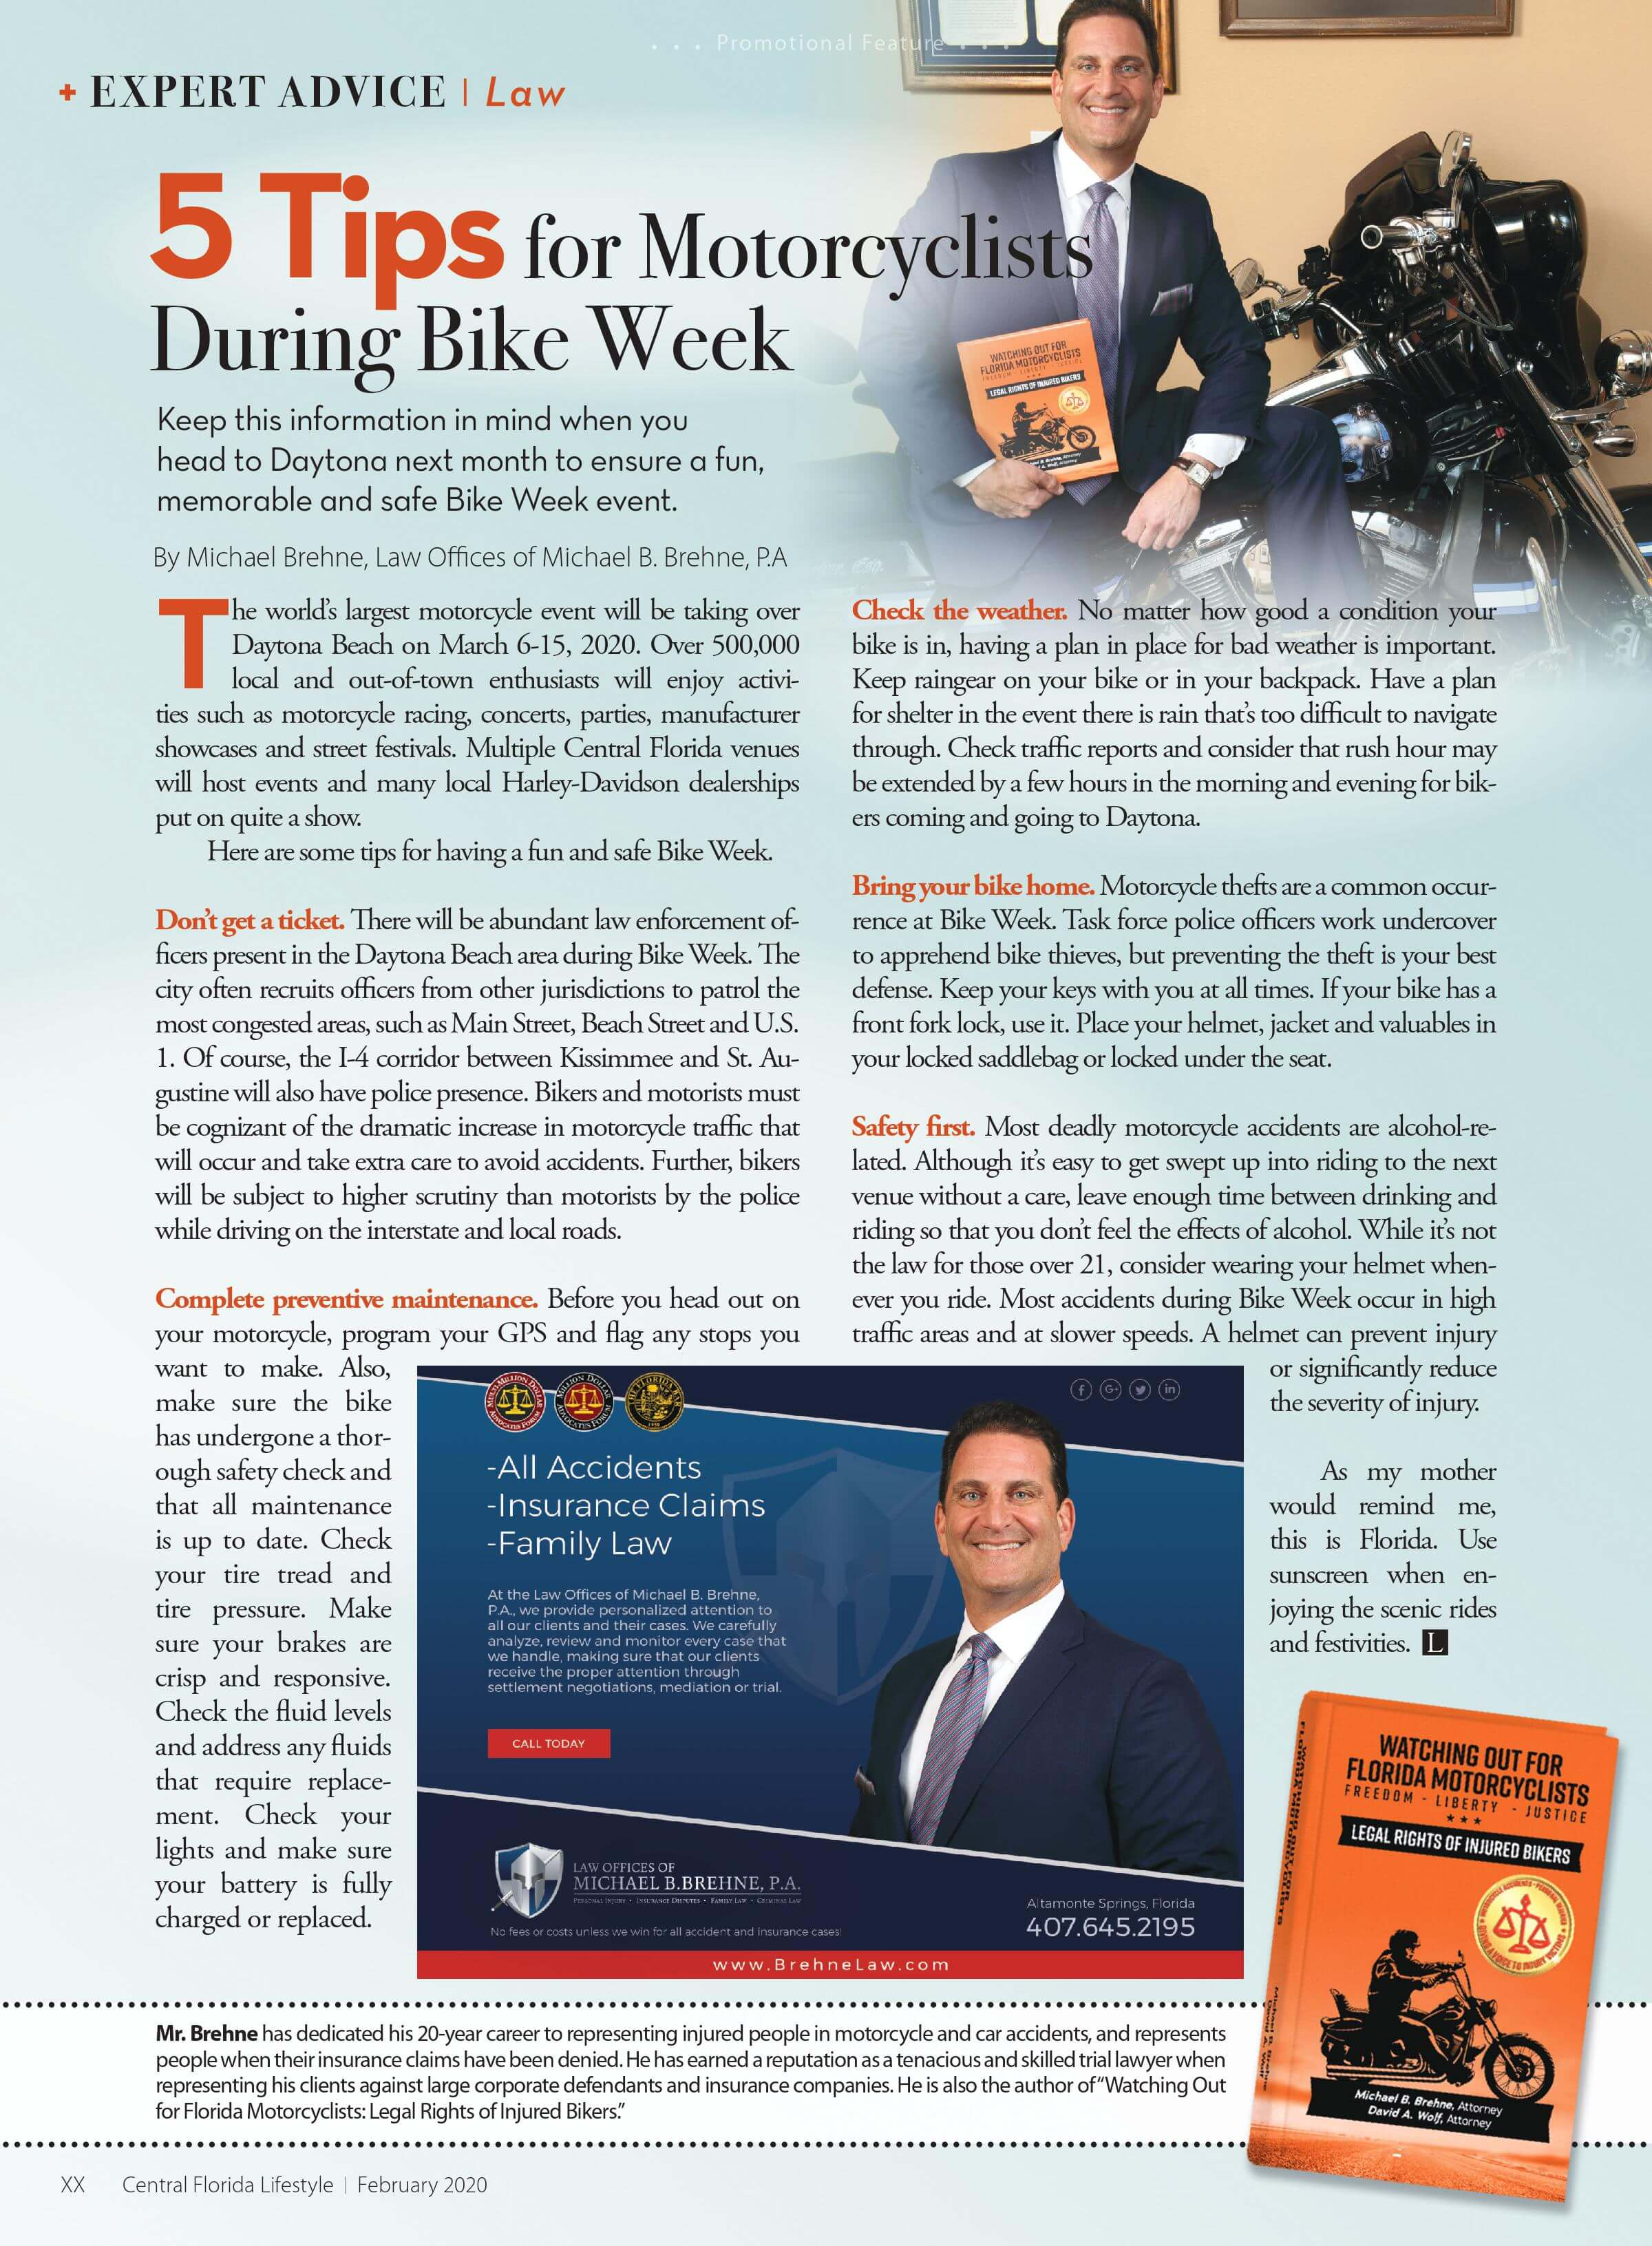 Picture for 5 Tips For Motorcyclists During Bike Week